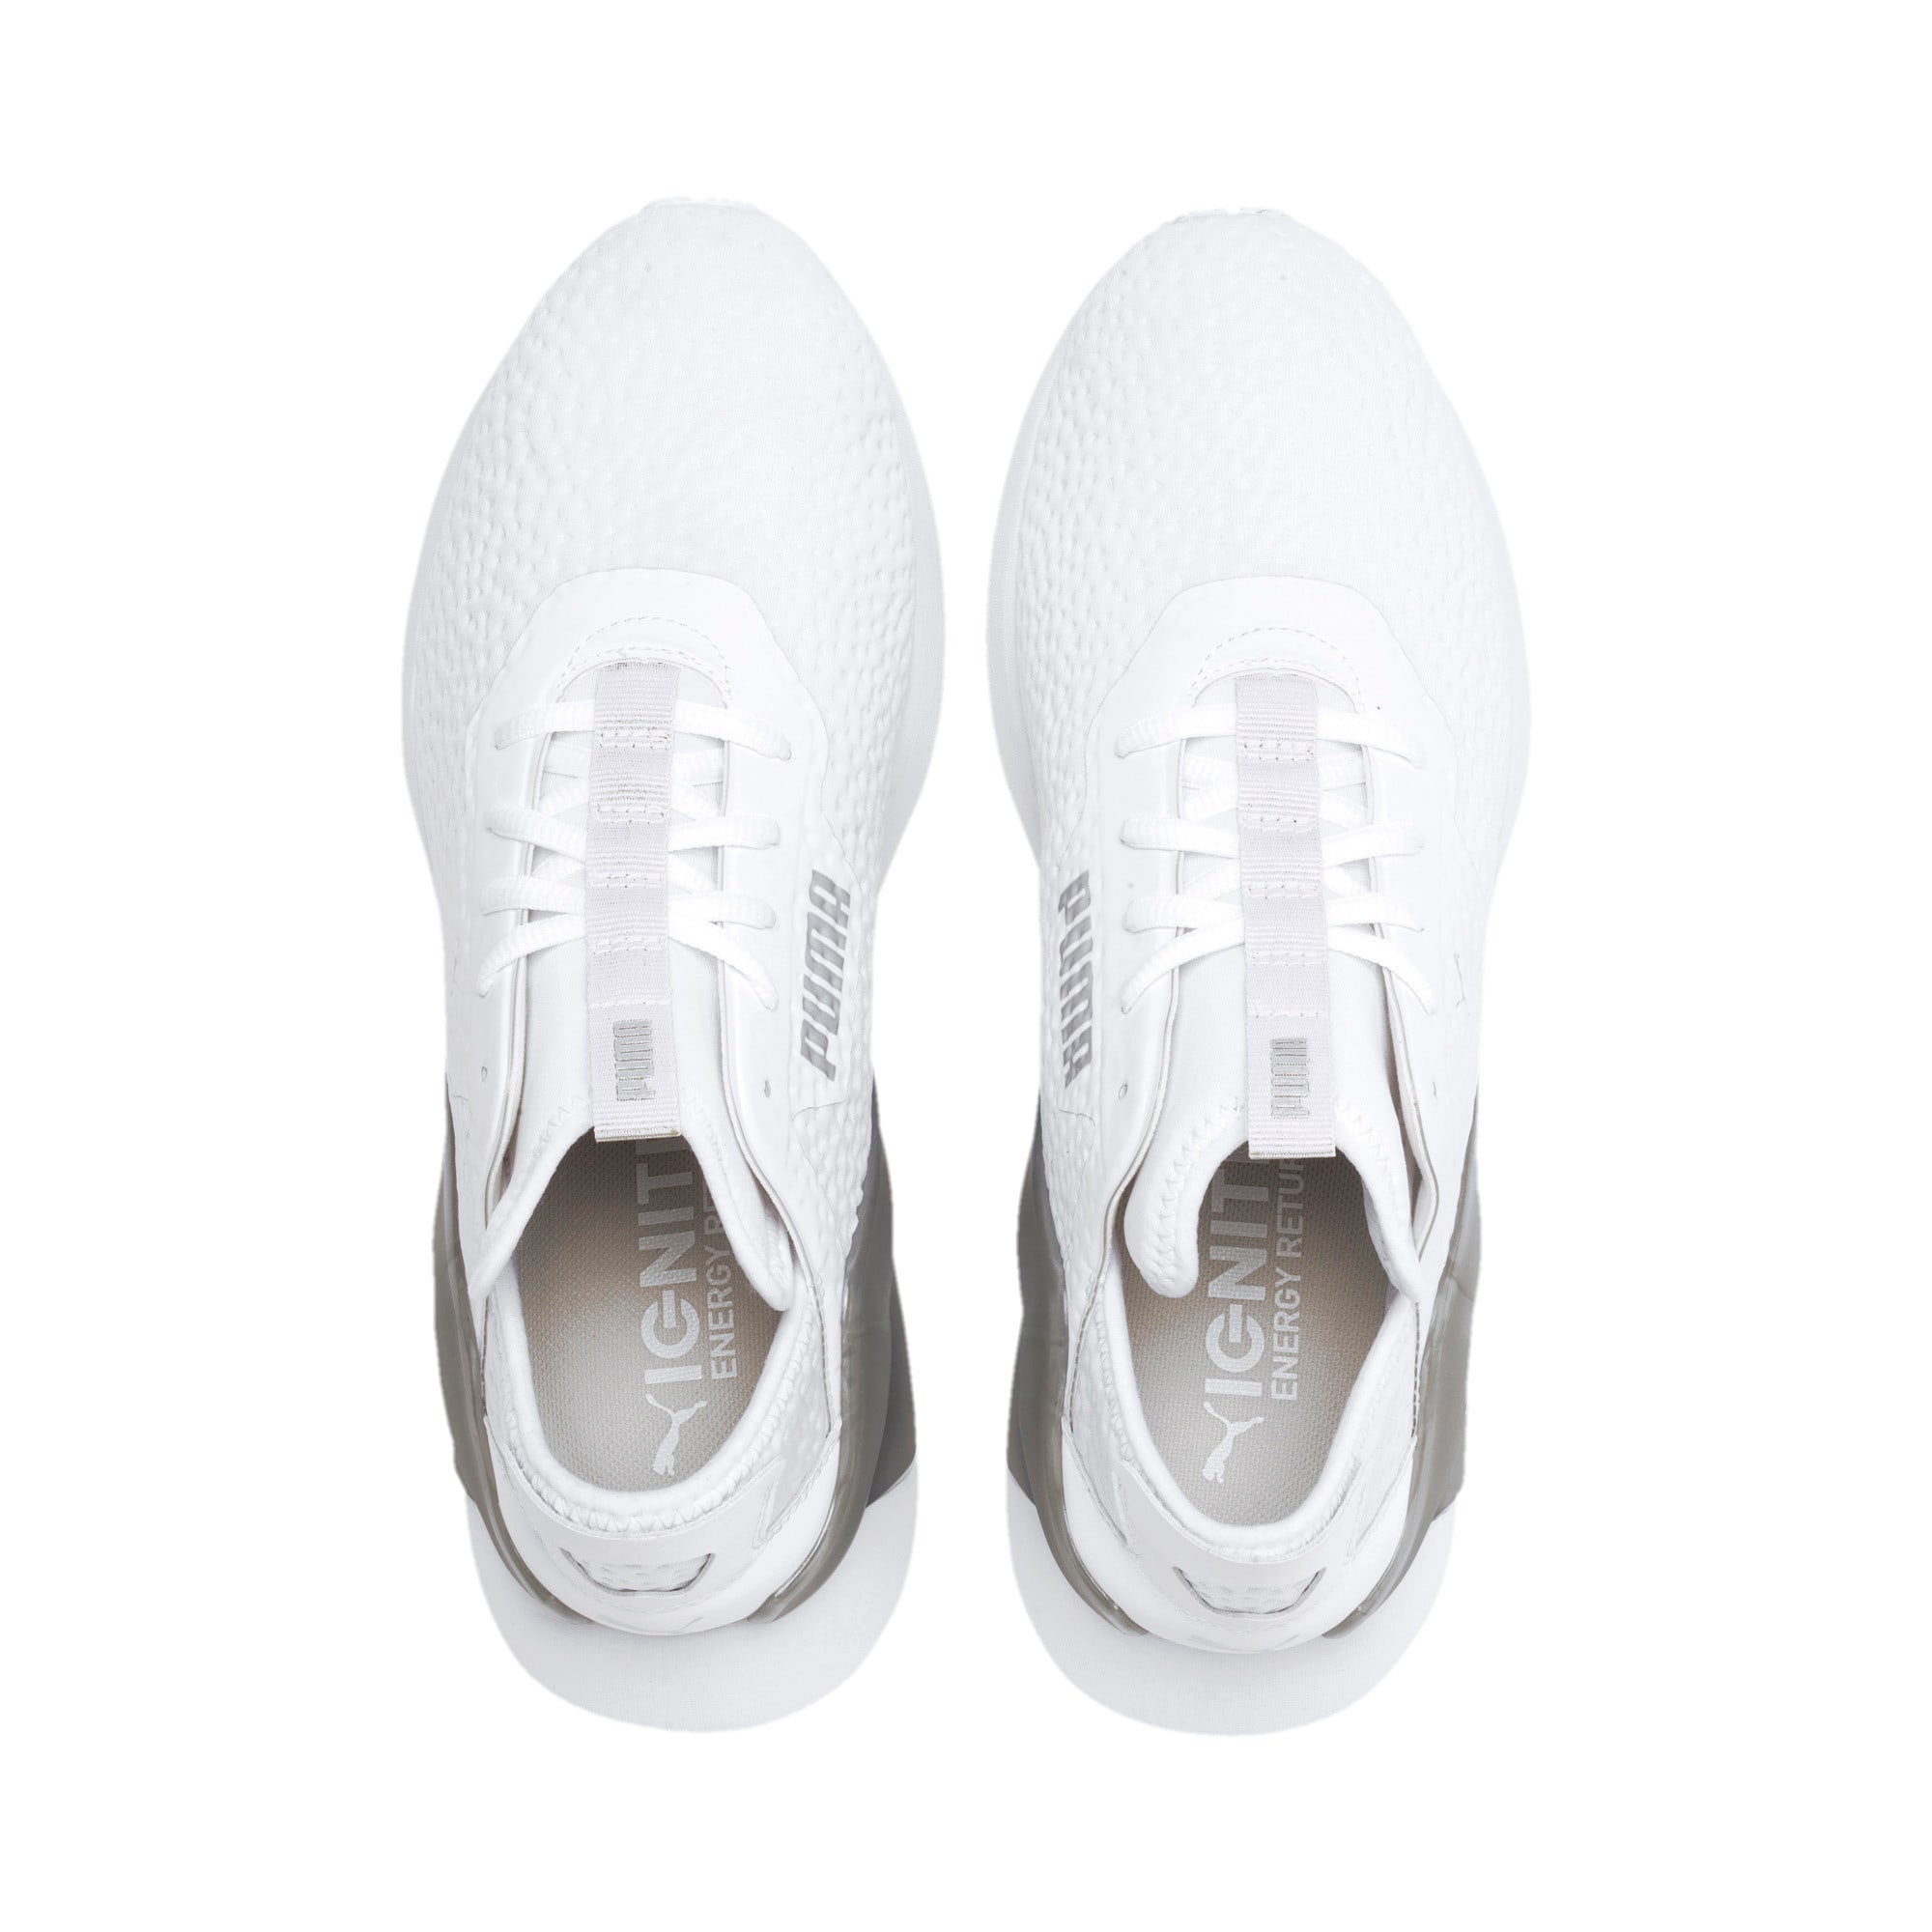 Thumbnail 7 of Rogue X Metallic Herren Sneaker, Puma White-Puma Silver, medium